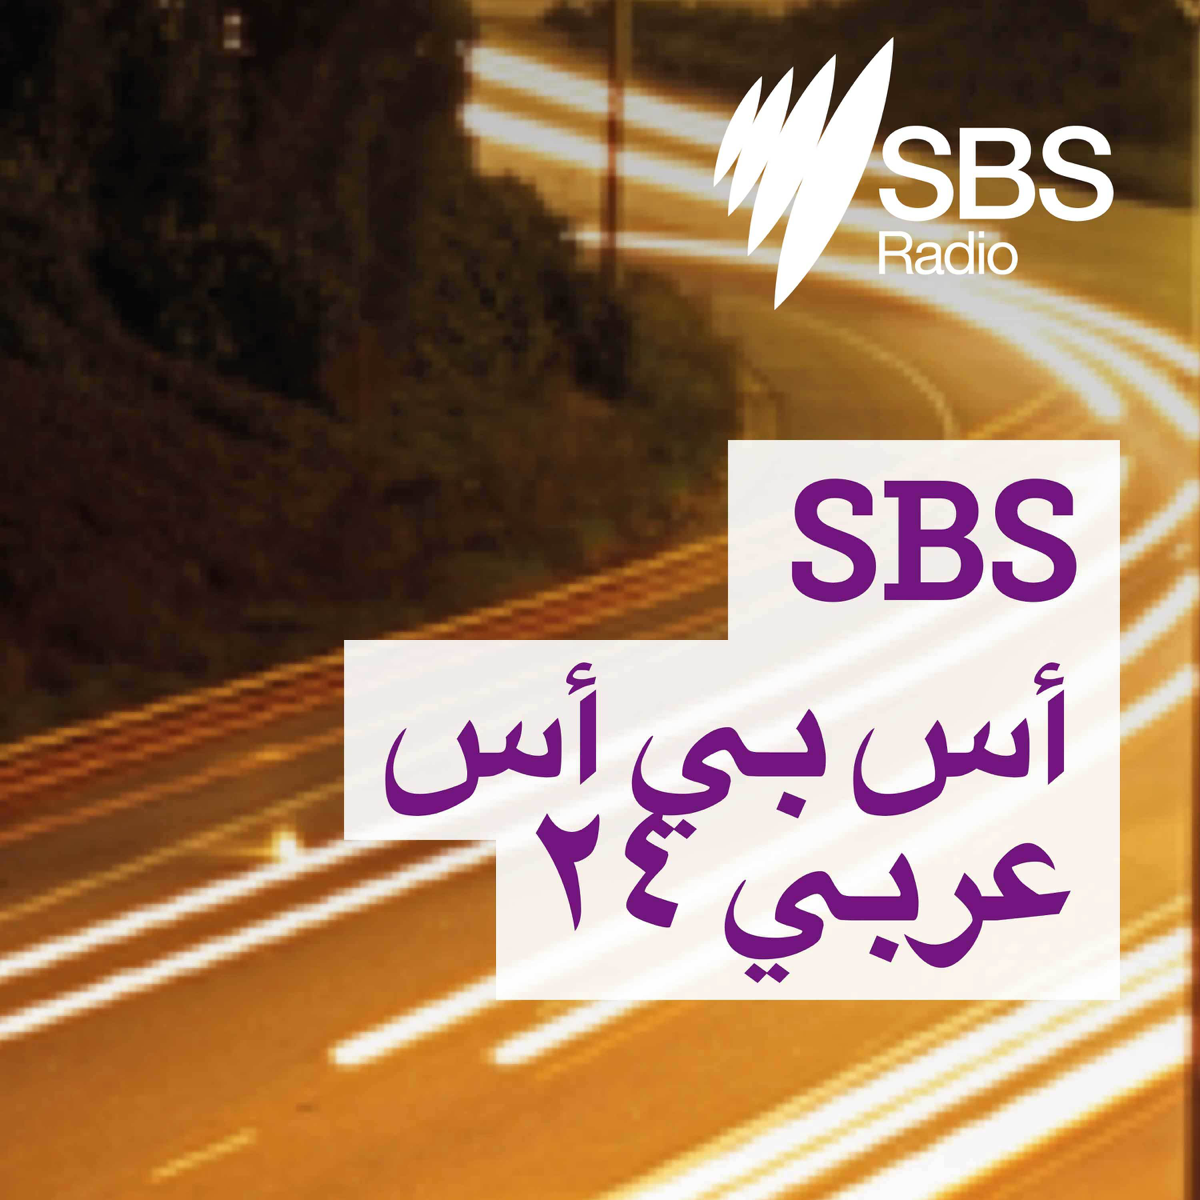 ffe9b49b2 Best episodes of SBS Arabic24 - أس بي أس عربي ۲٤ | Podyssey Podcasts